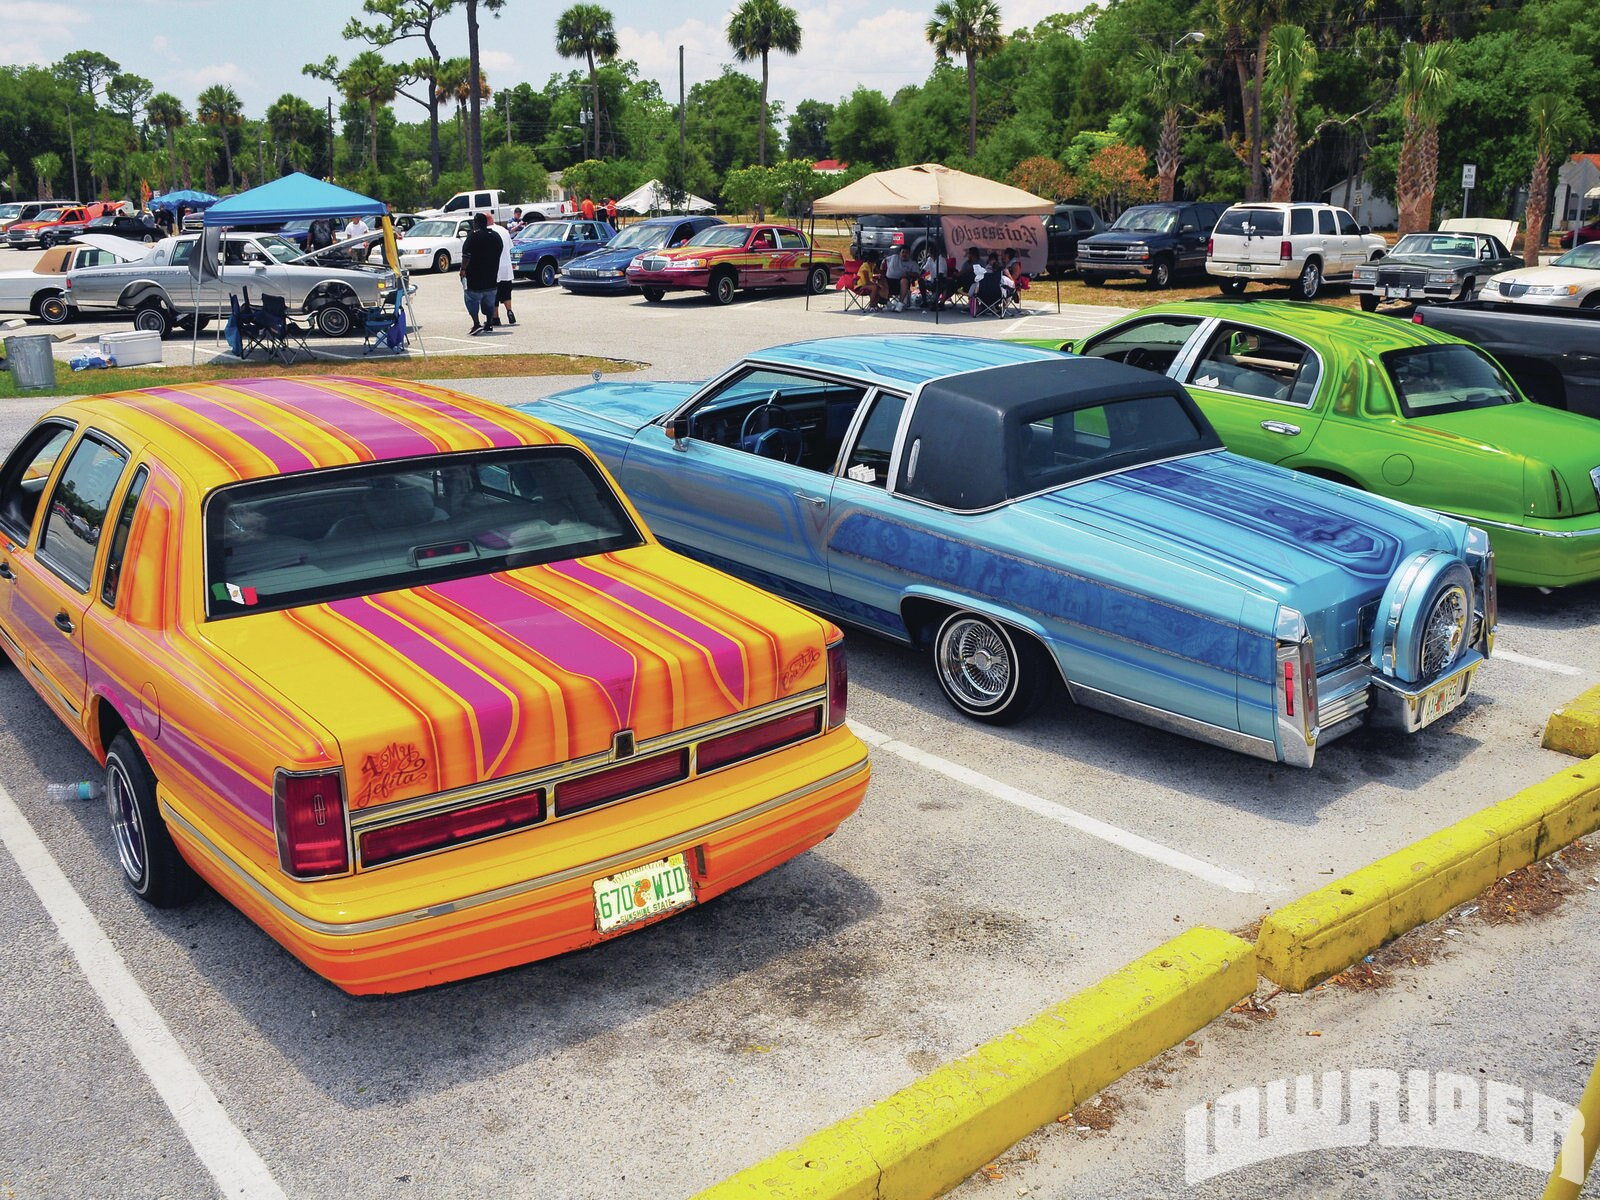 lrmp-1111-01-o-majestics-picnic-show-parking-lot2